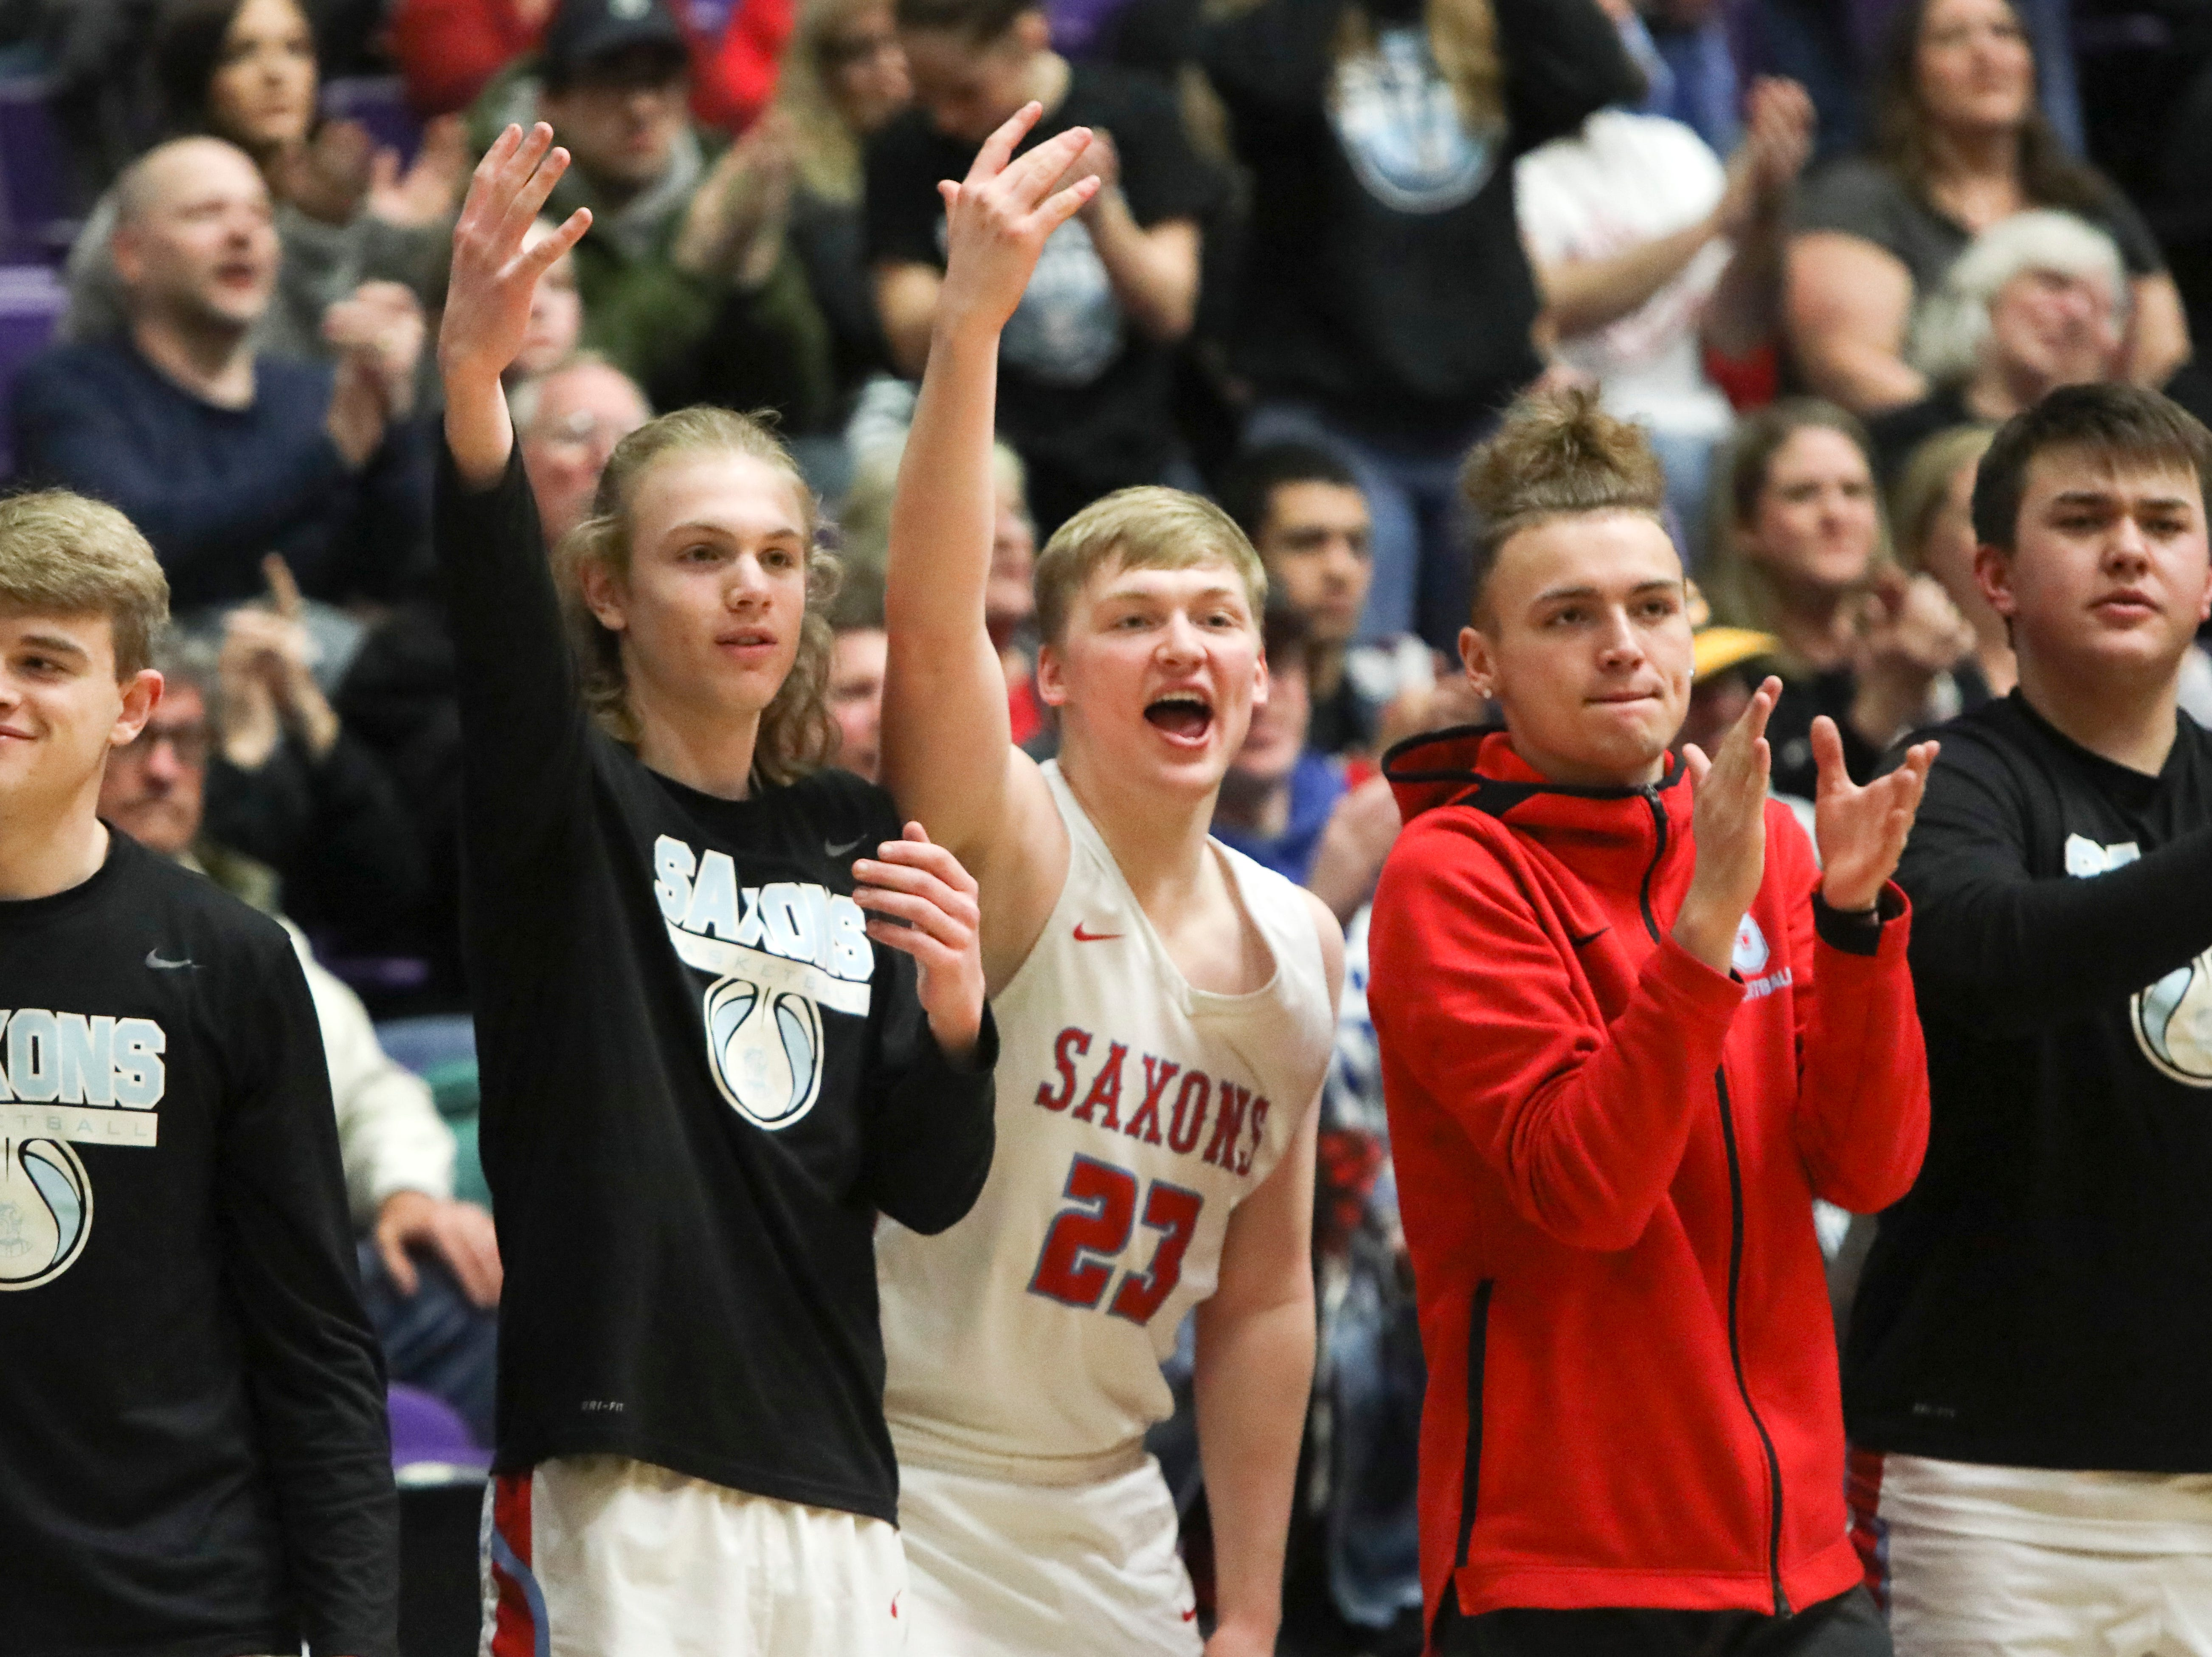 The South Salem bench celebrates a basket against Tigard during the OSAA 6A boys basketball state tournament quarterfinal against Tigard on Wednesday, March 6 at Chiles Center.